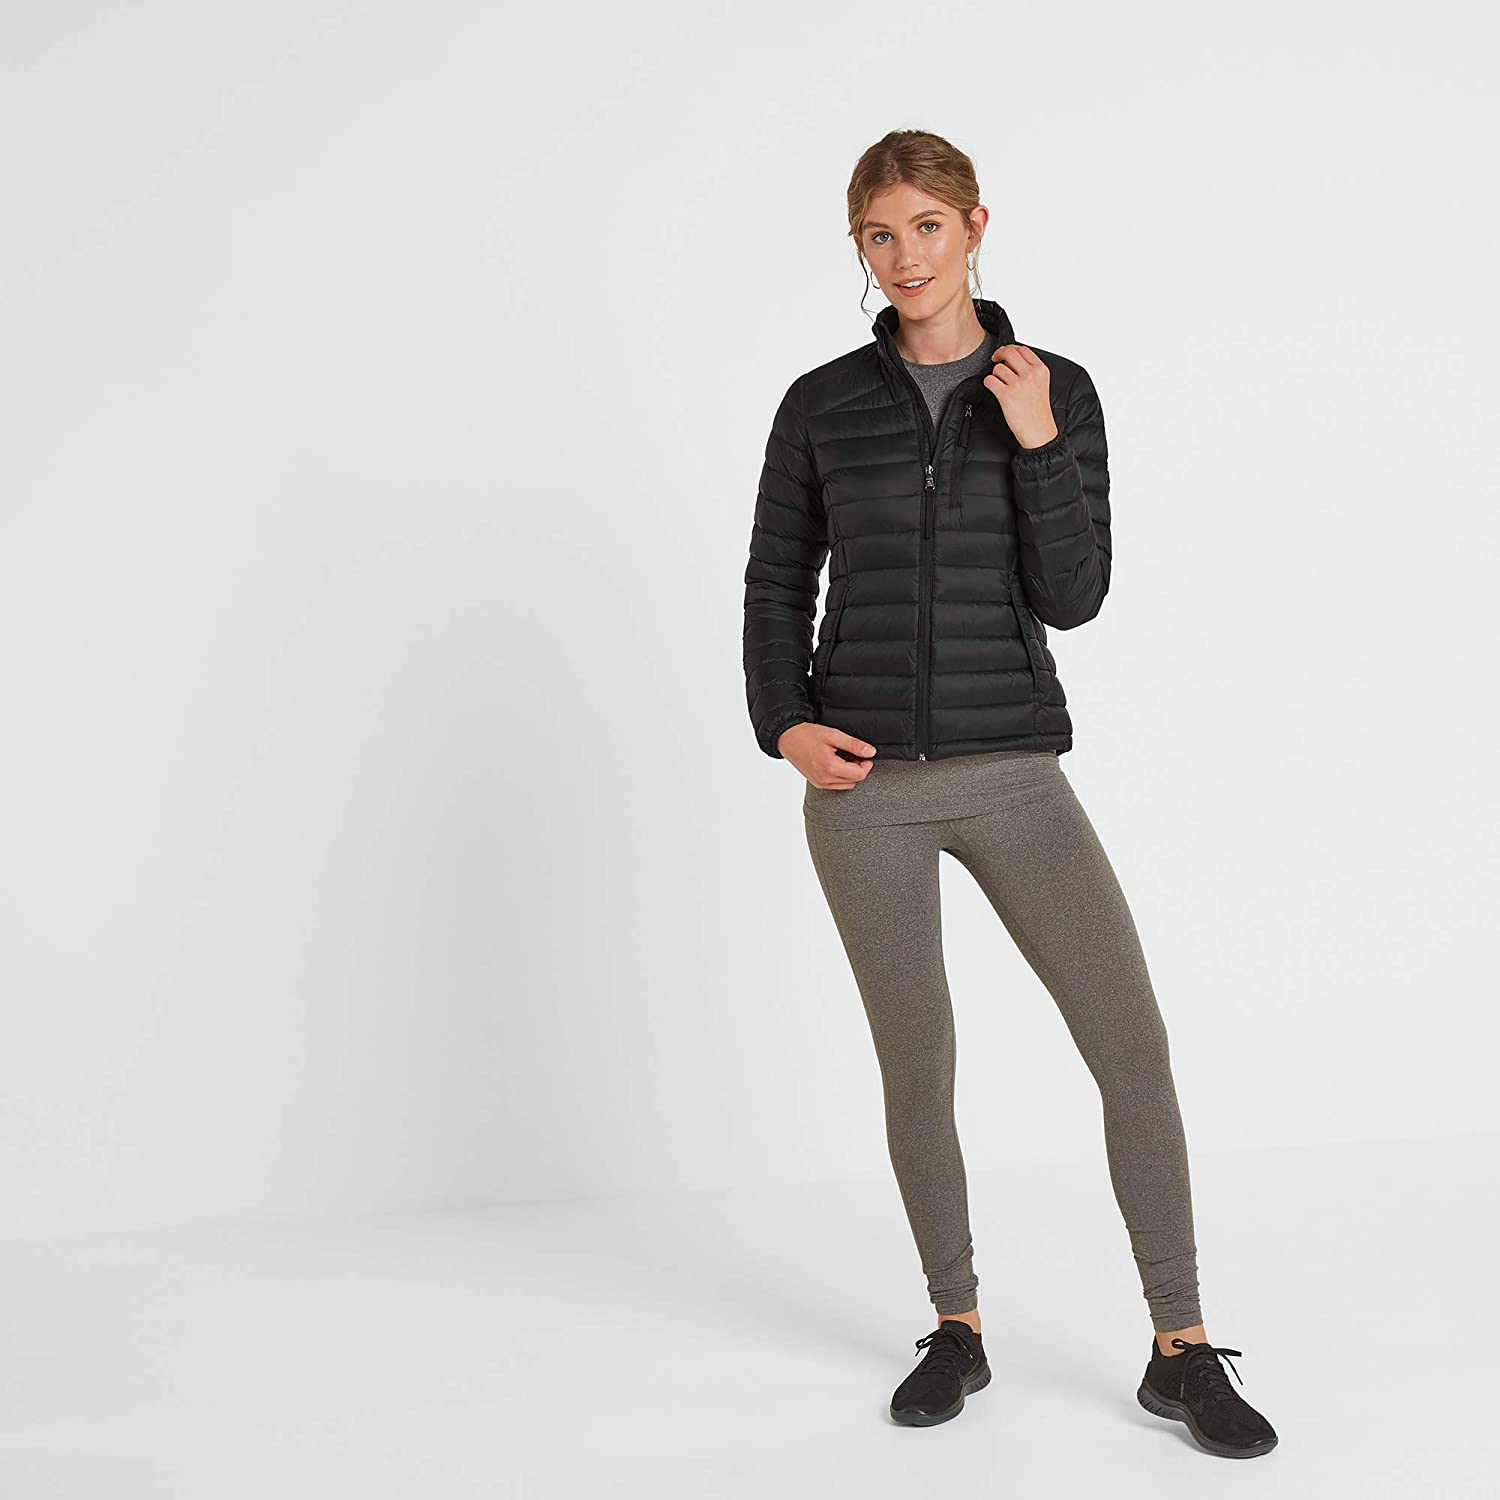 Ultrawarm Outerwear or mid Layer Lightweight and Smooth Packs Down Small into Integral Zip Pocket TOG 24 Drax Womens Packable Down Jacket